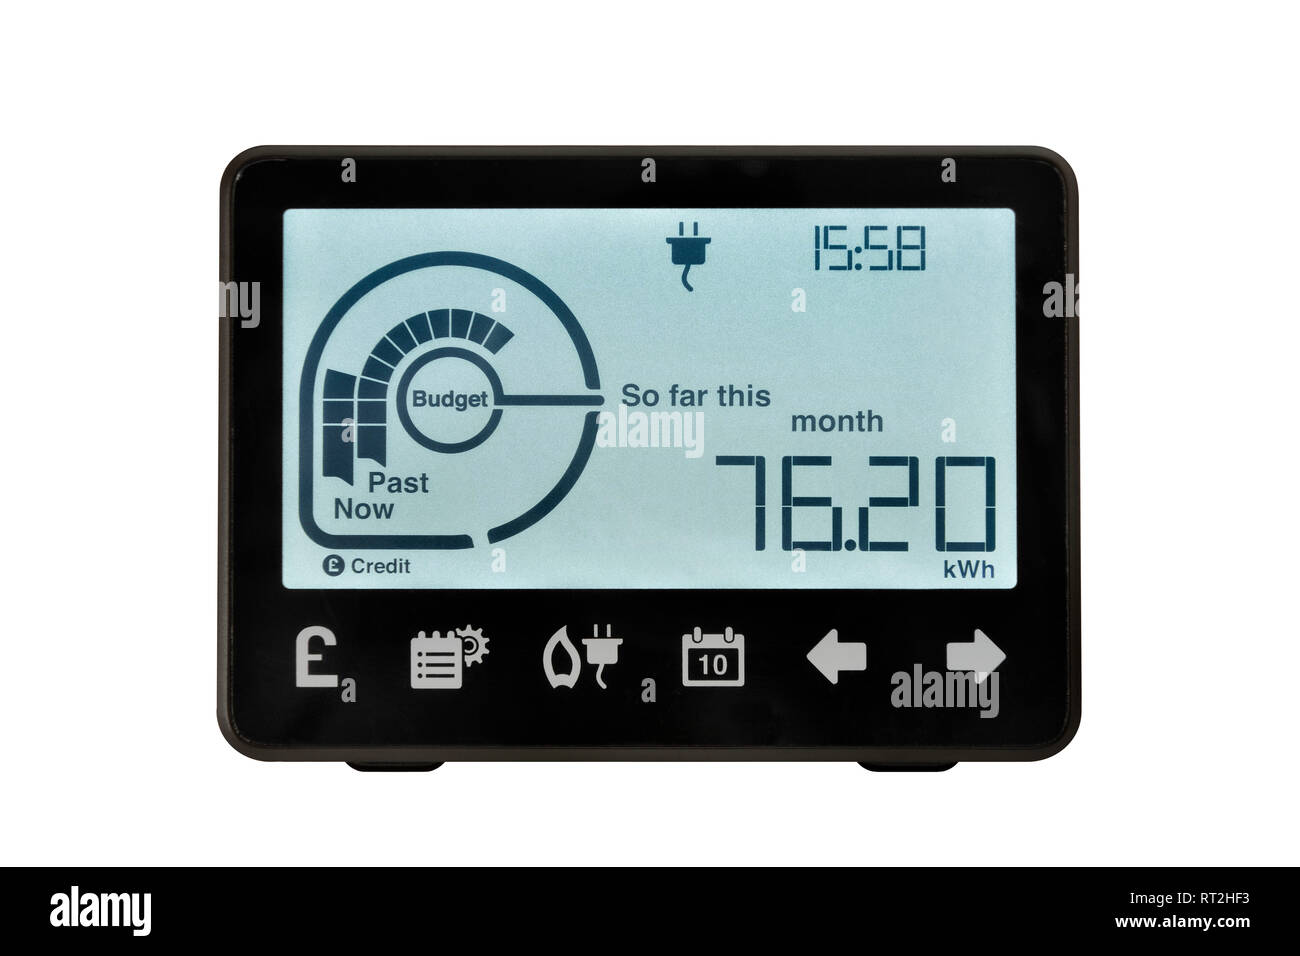 Smart Meter, United Kingdom. An electronic device for recording and monitoring the consumption of electricity in the home. Stock Photo